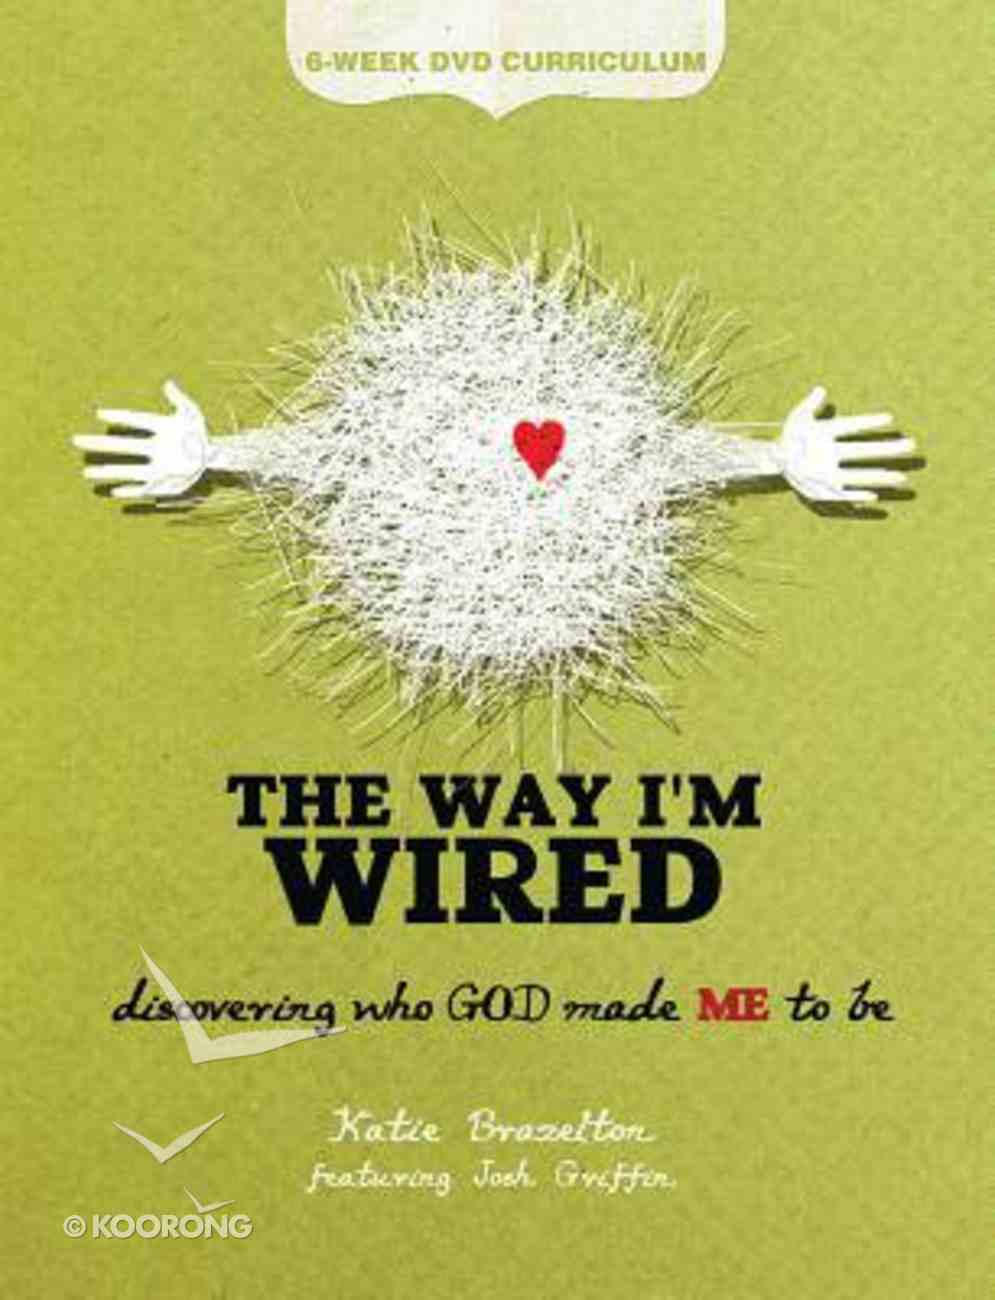 The Way I'm Wired (6-week Dvd Curriculum) DVD